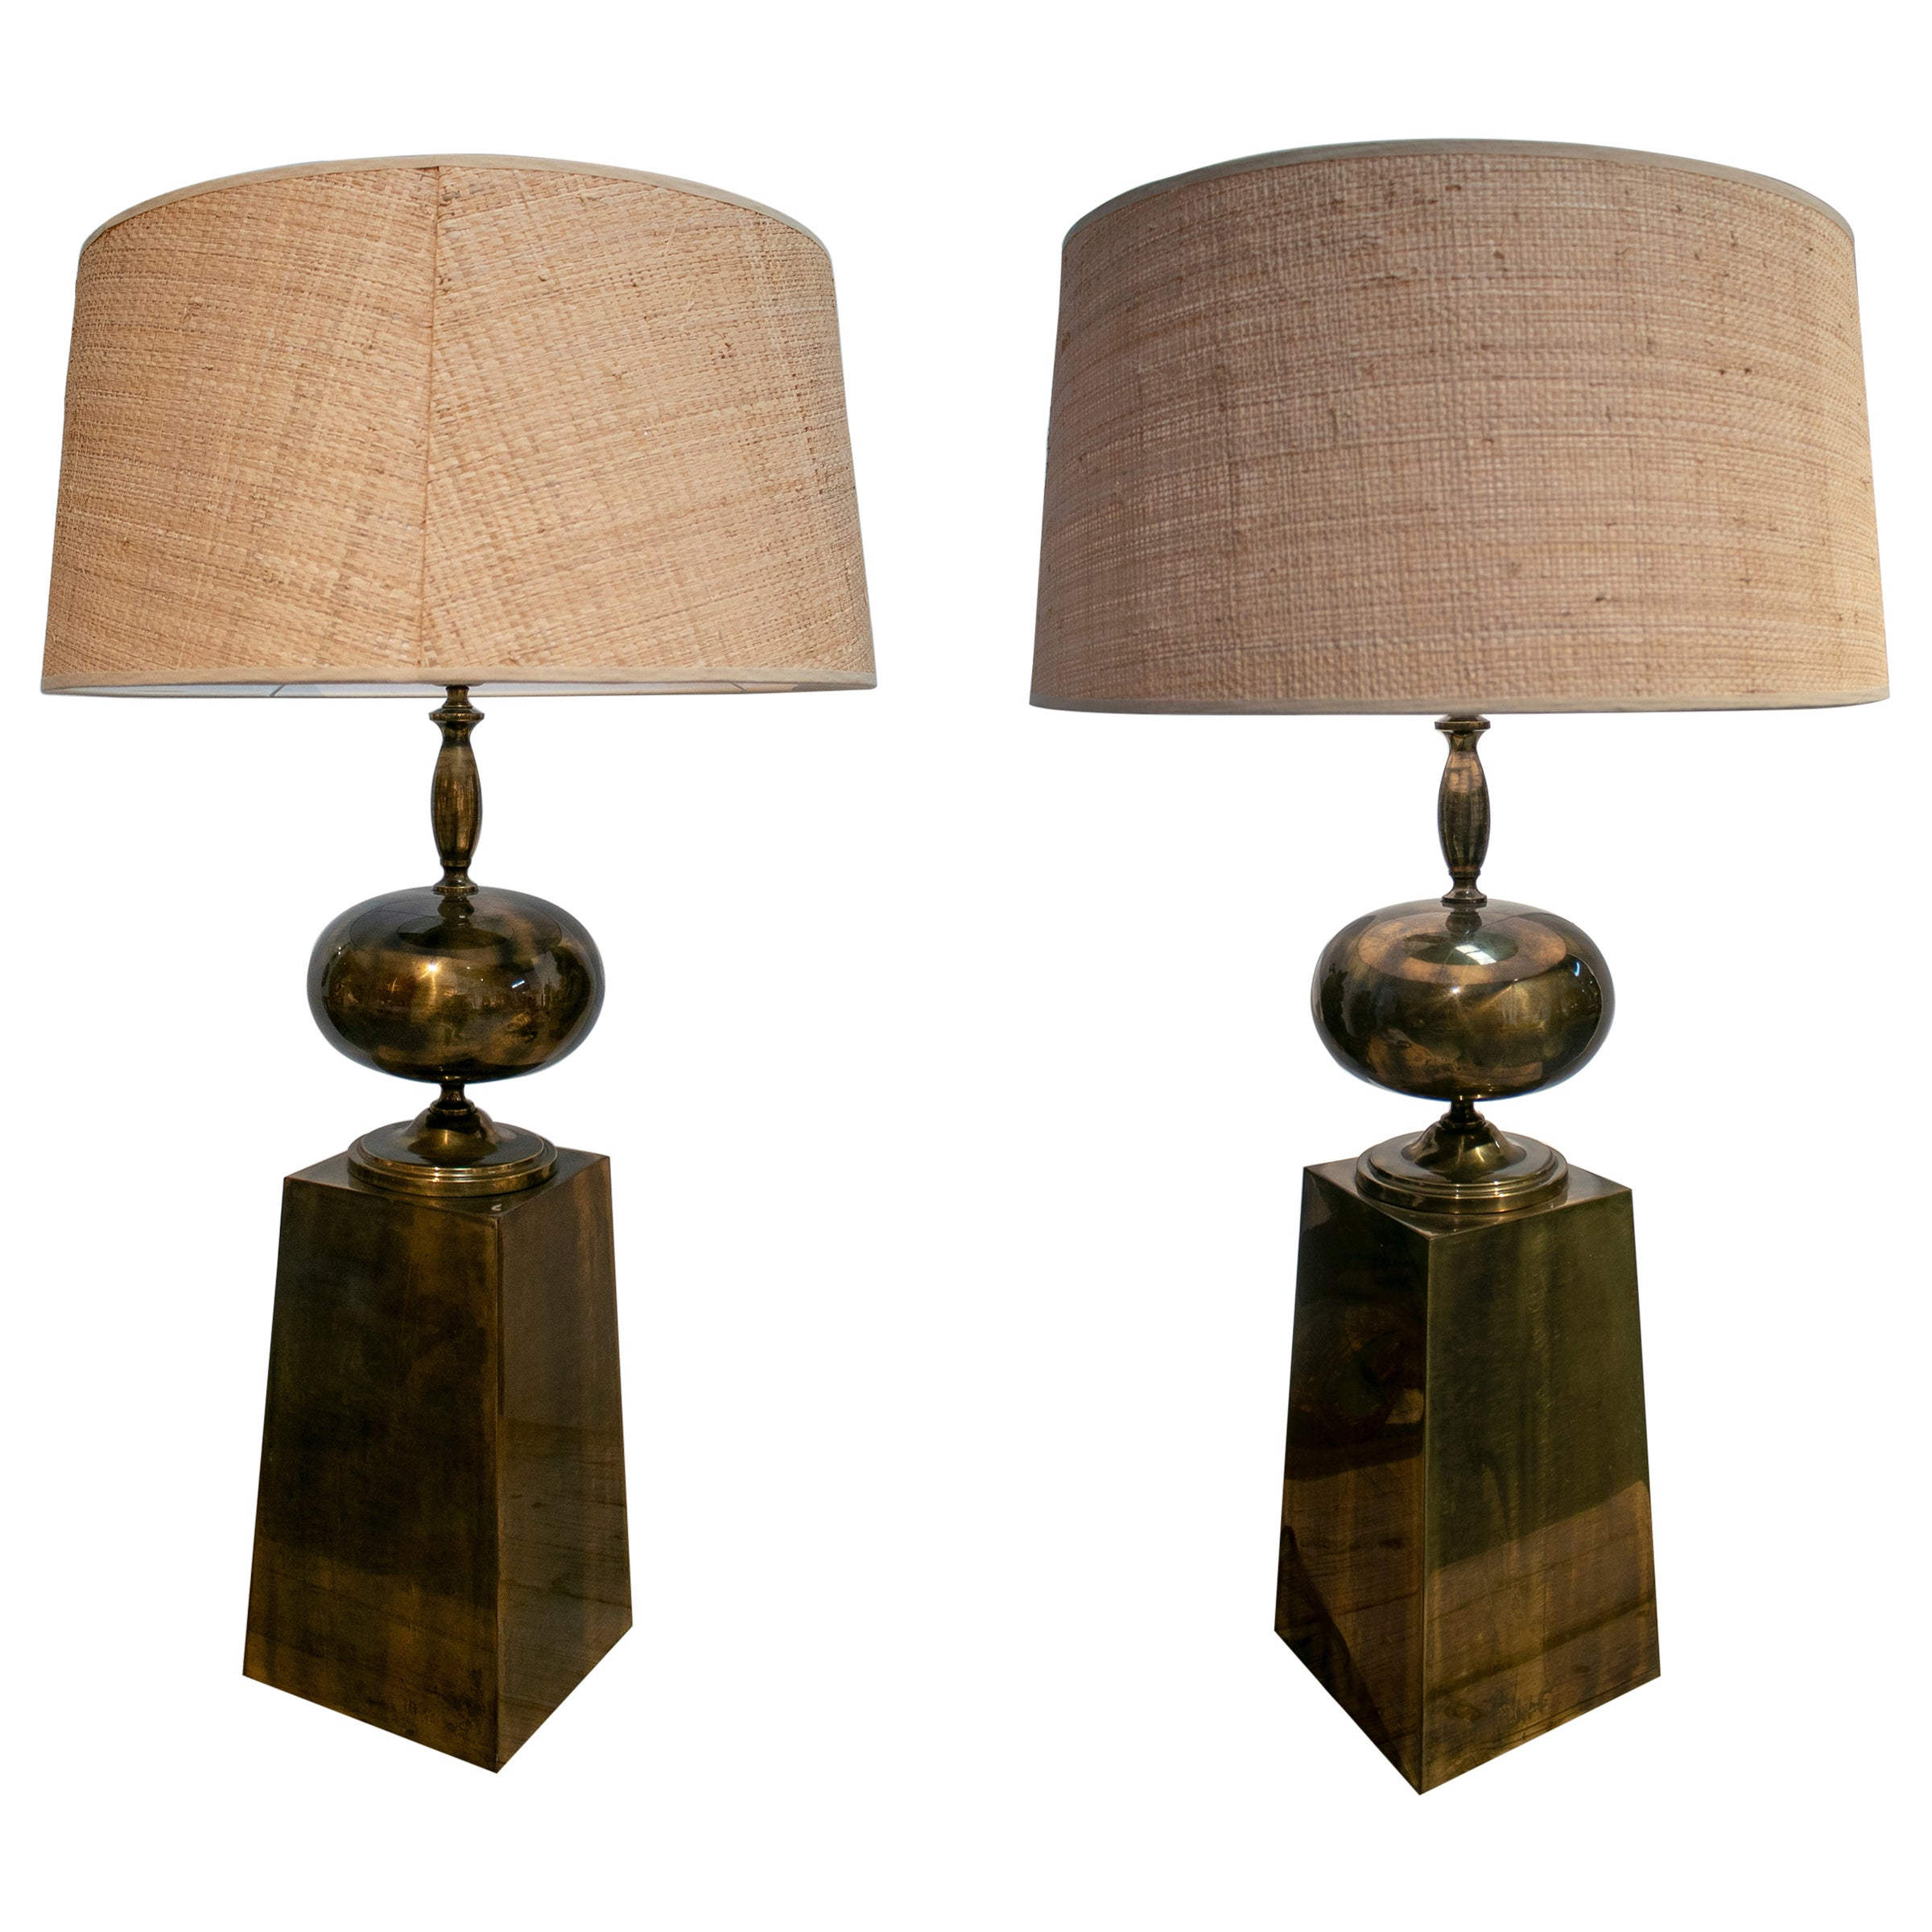 1970s Pair of Spanish Bronze Table Lamps